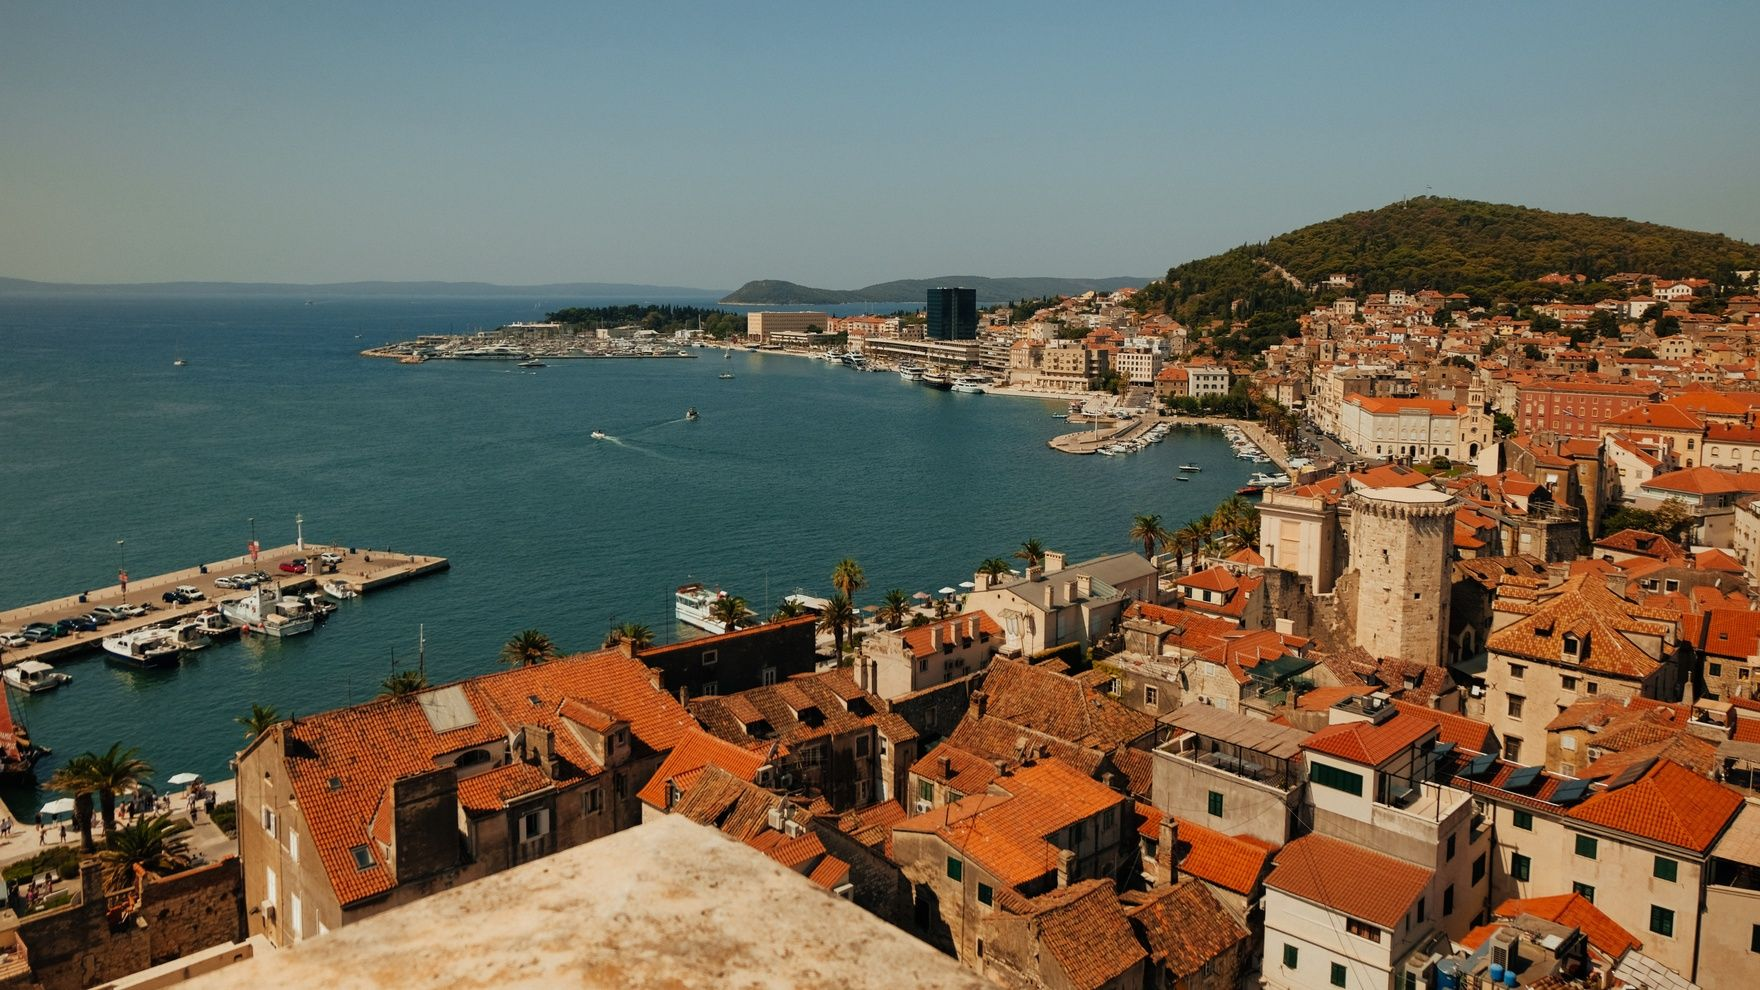 Sailing from the Adriatic to the Ionian Sea